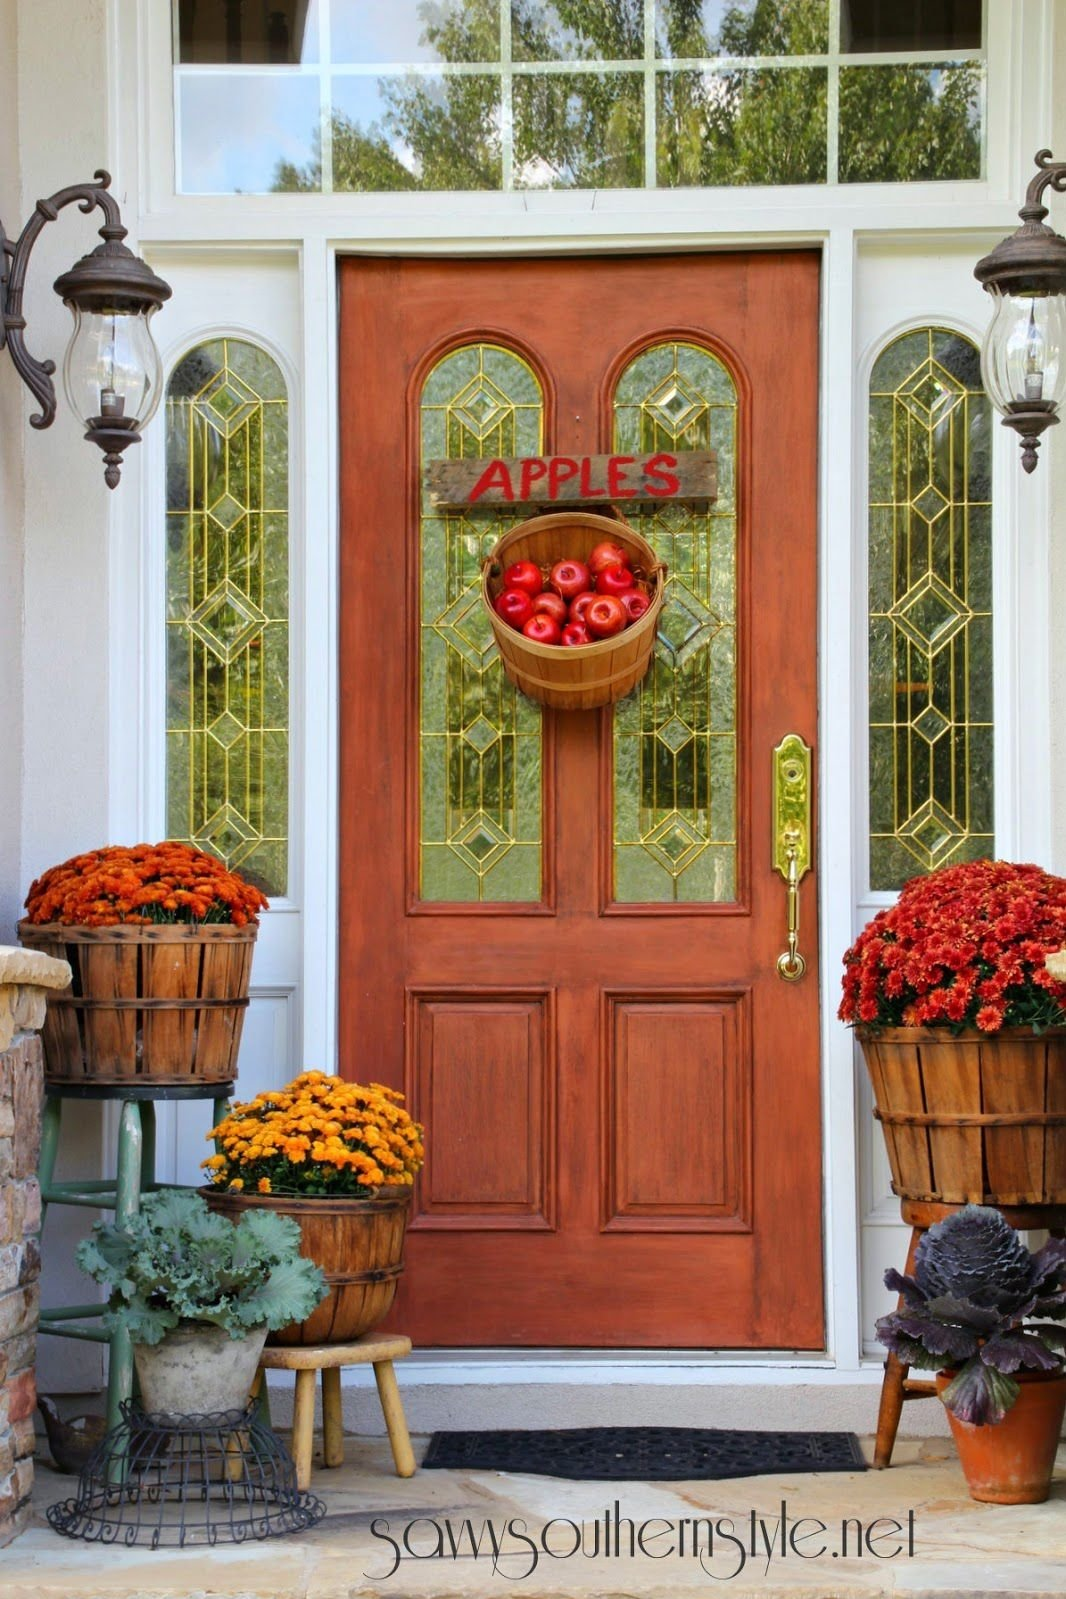 10 Lovely Front Porch Decorating Ideas For Fall 37 fall porch decorating ideas ways to decorate your porch for fall 3